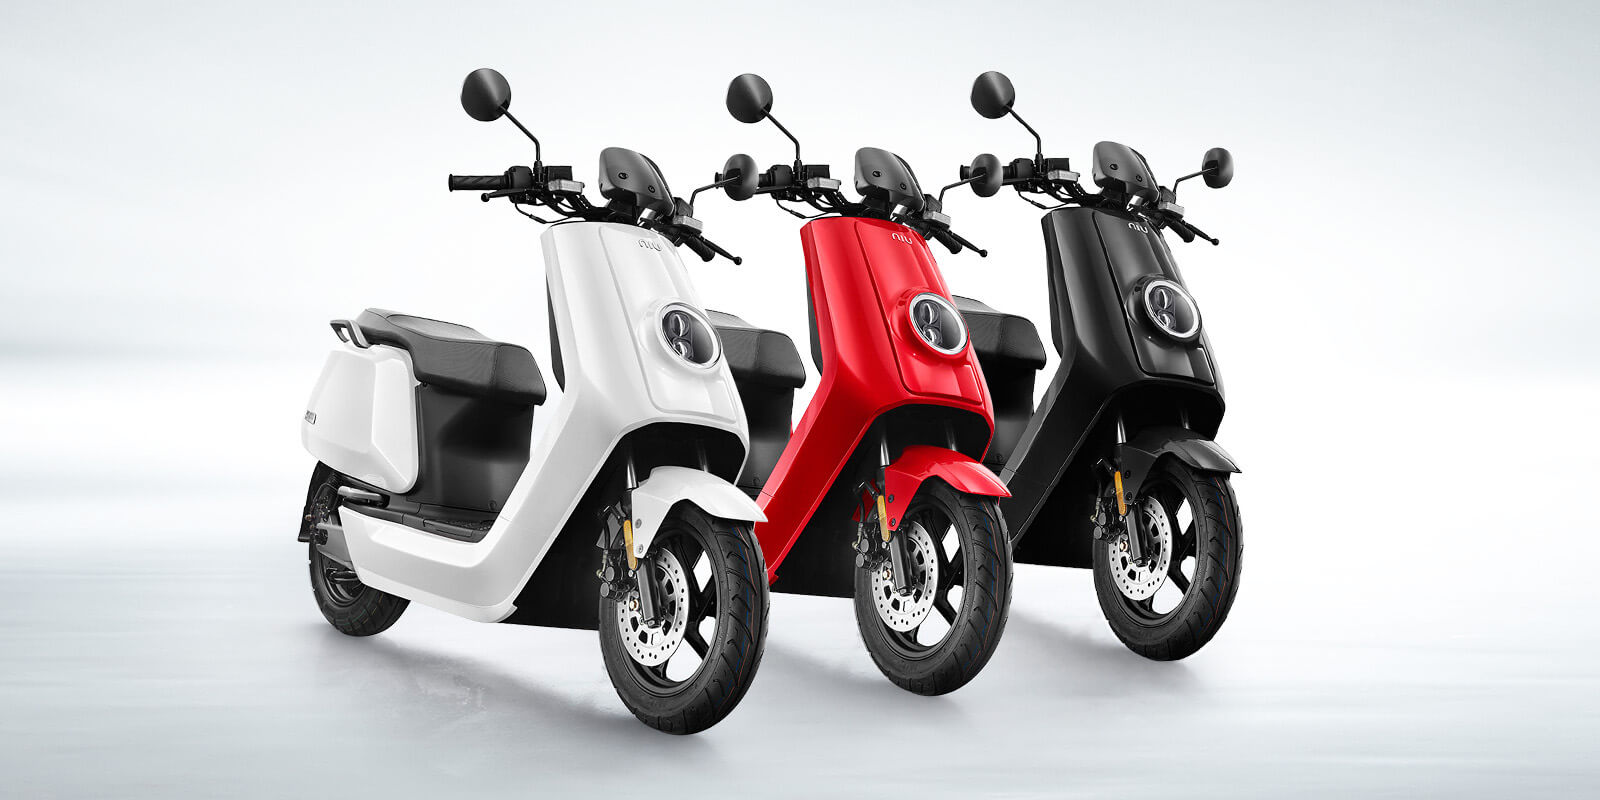 It's official: NIU to open US sales for seated electric scooters next week